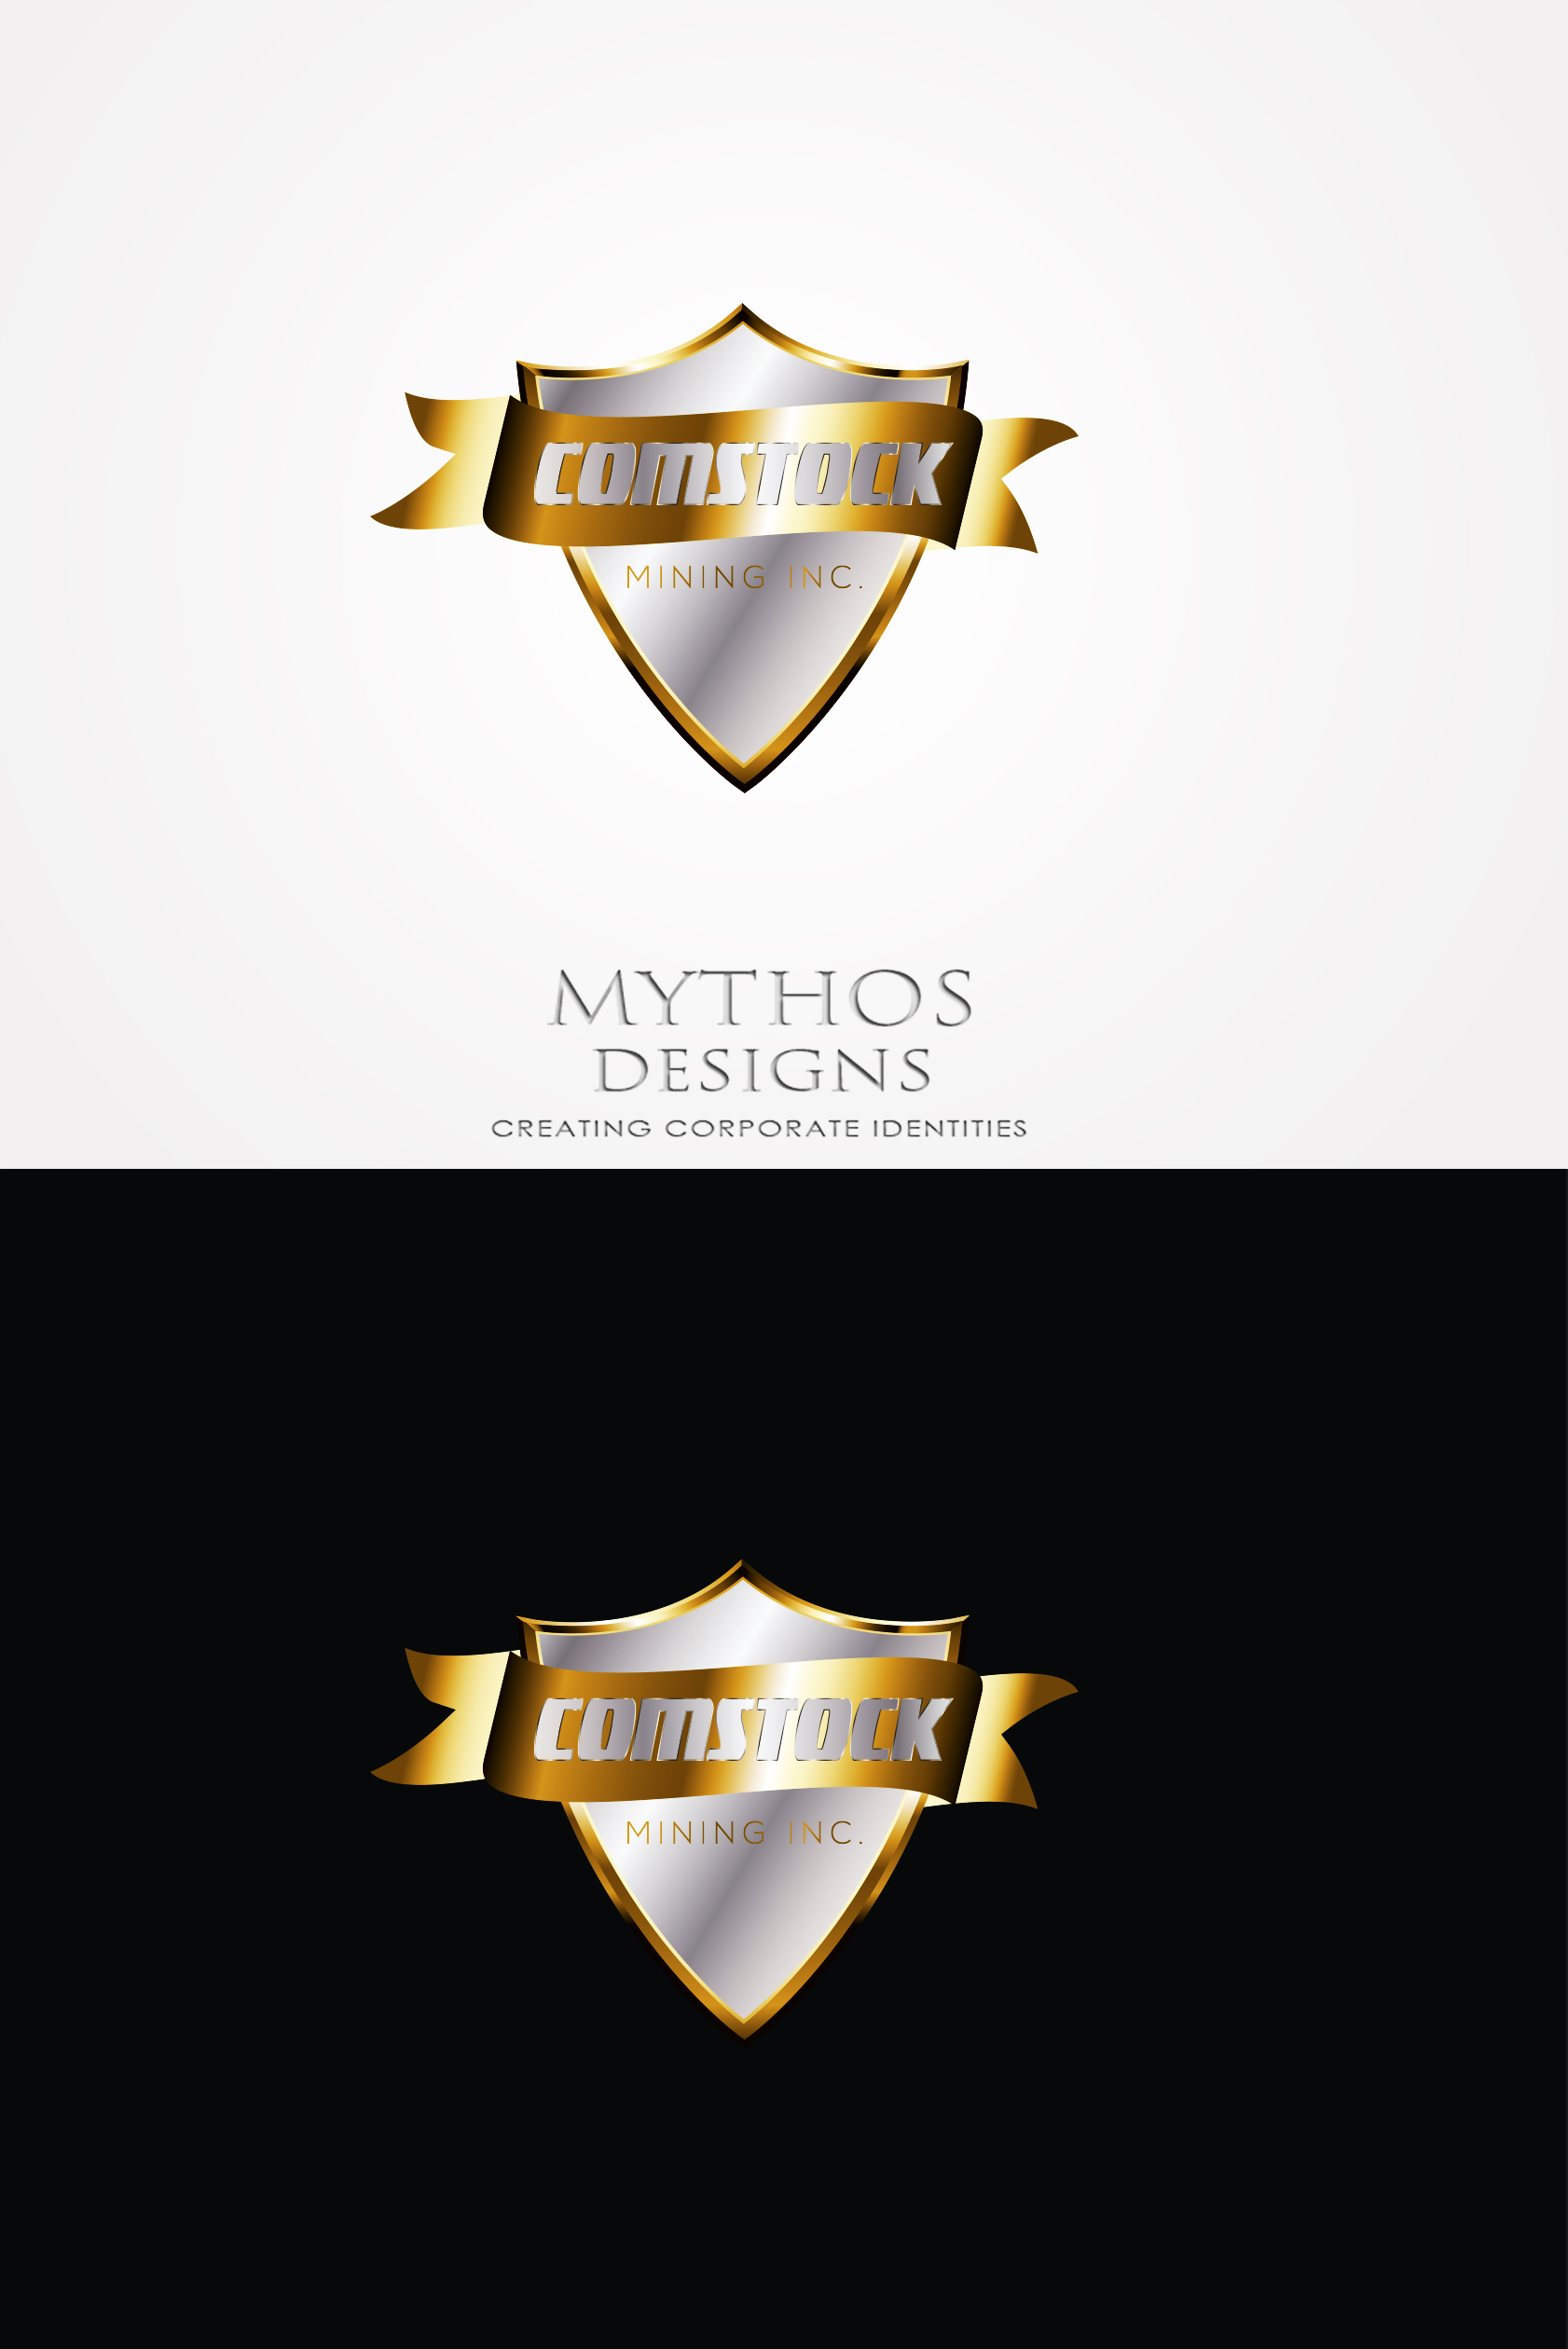 Logo Design by Mythos Designs - Entry No. 81 in the Logo Design Contest Captivating Logo Design for Comstock Mining, Inc..